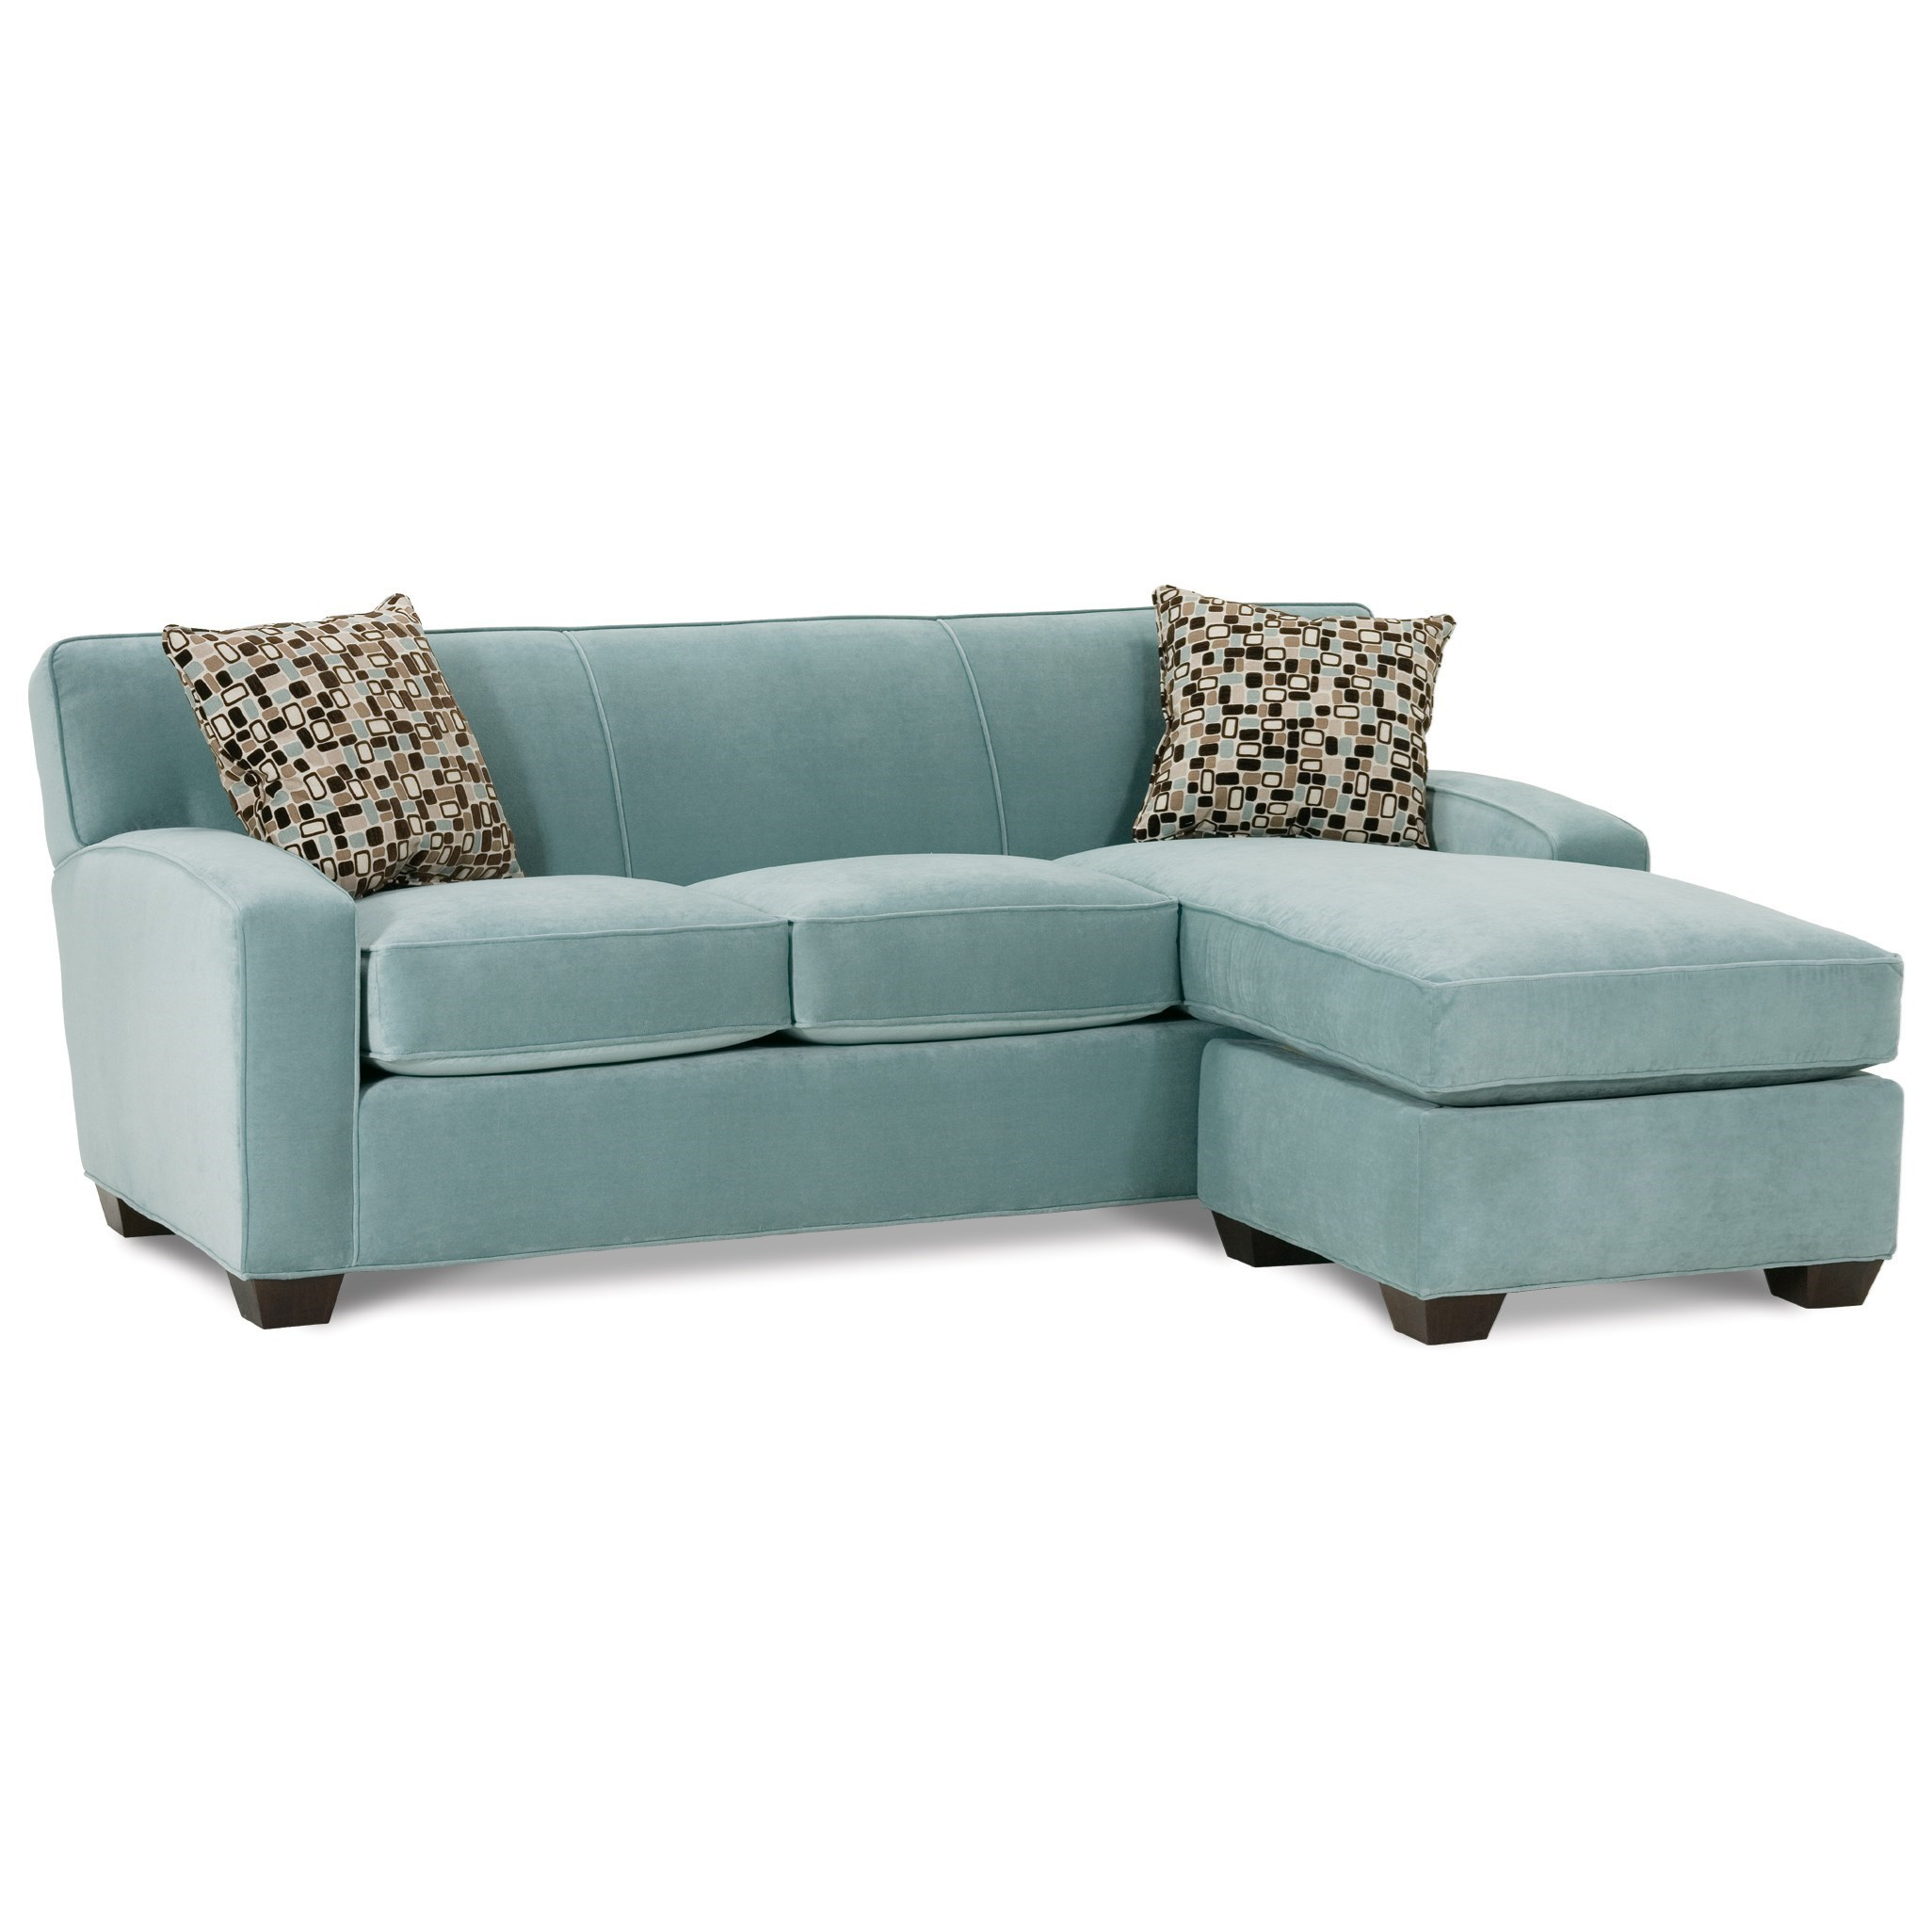 Transitional Sofa and Chaise